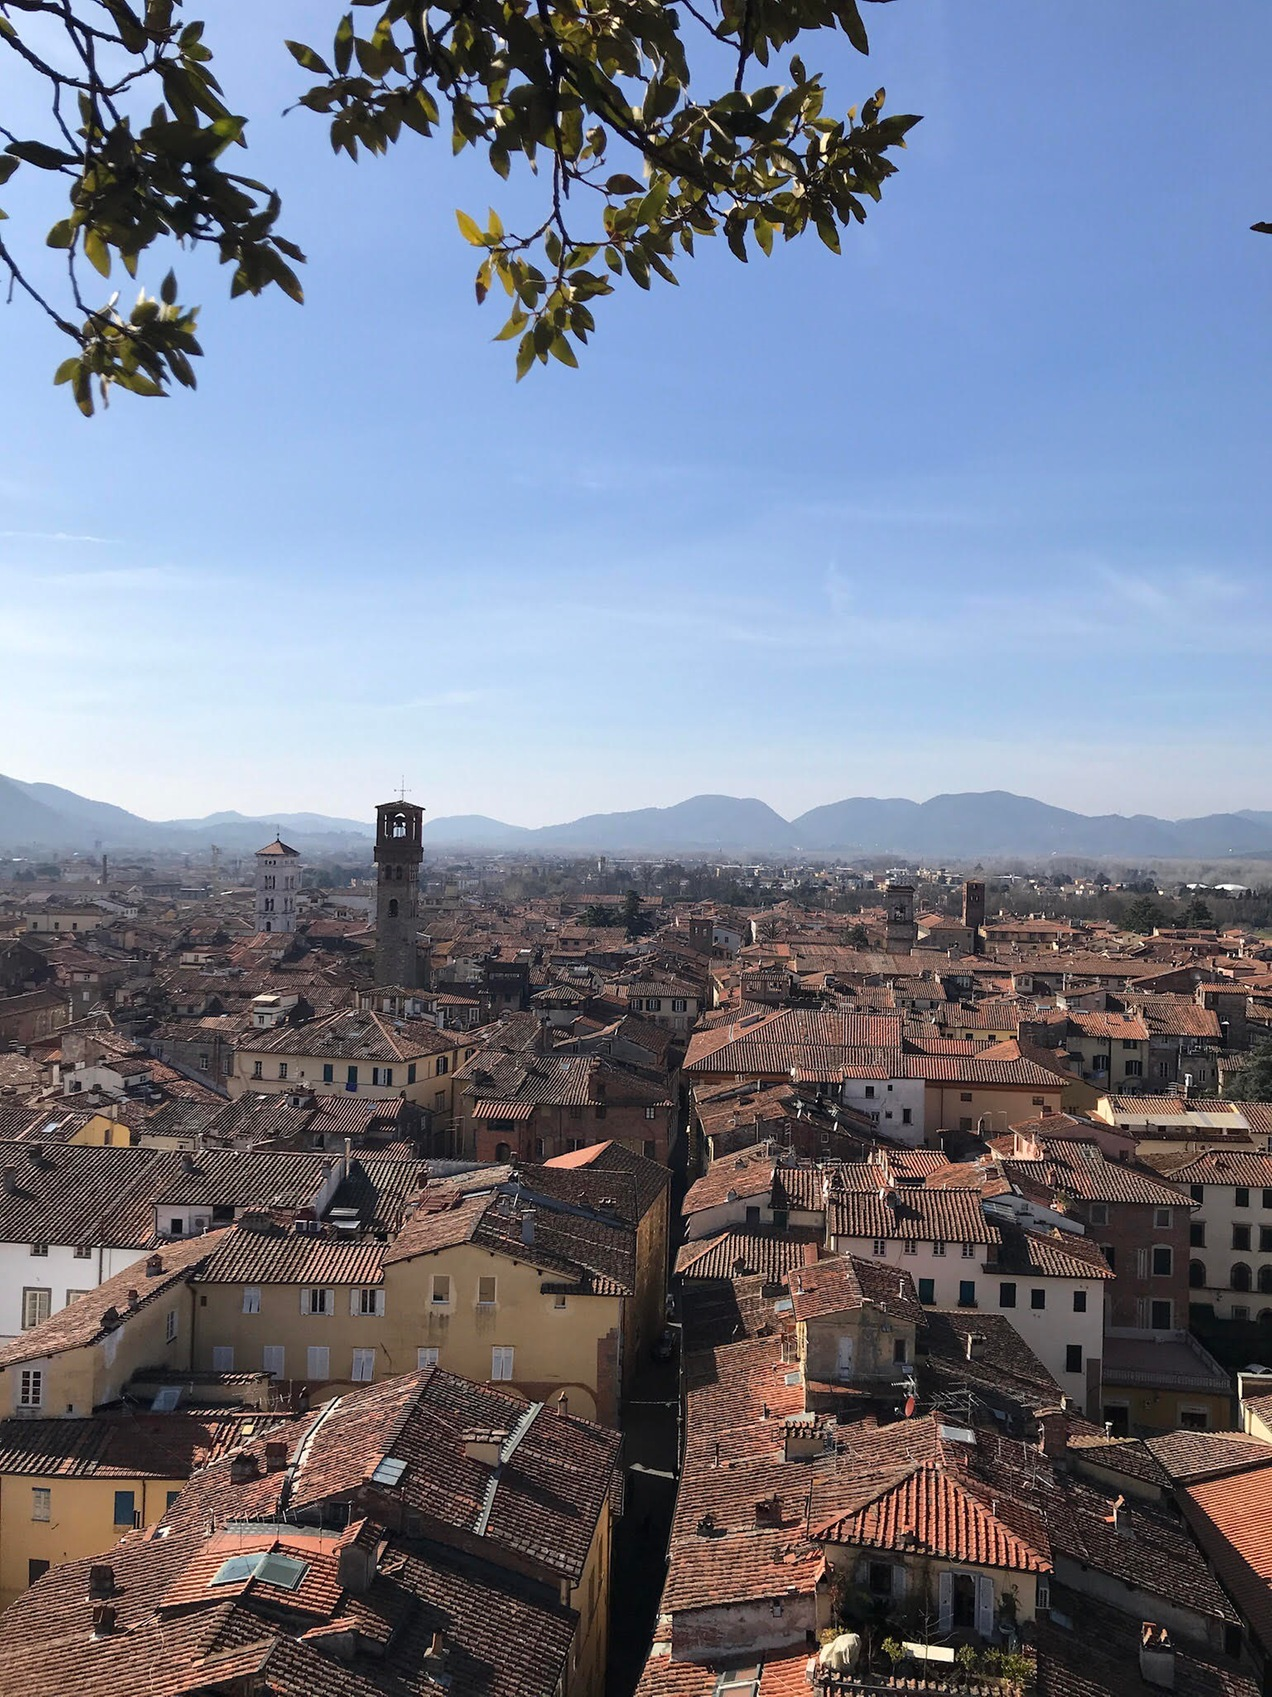 View from Guinigi Tower, Lucca, Italy